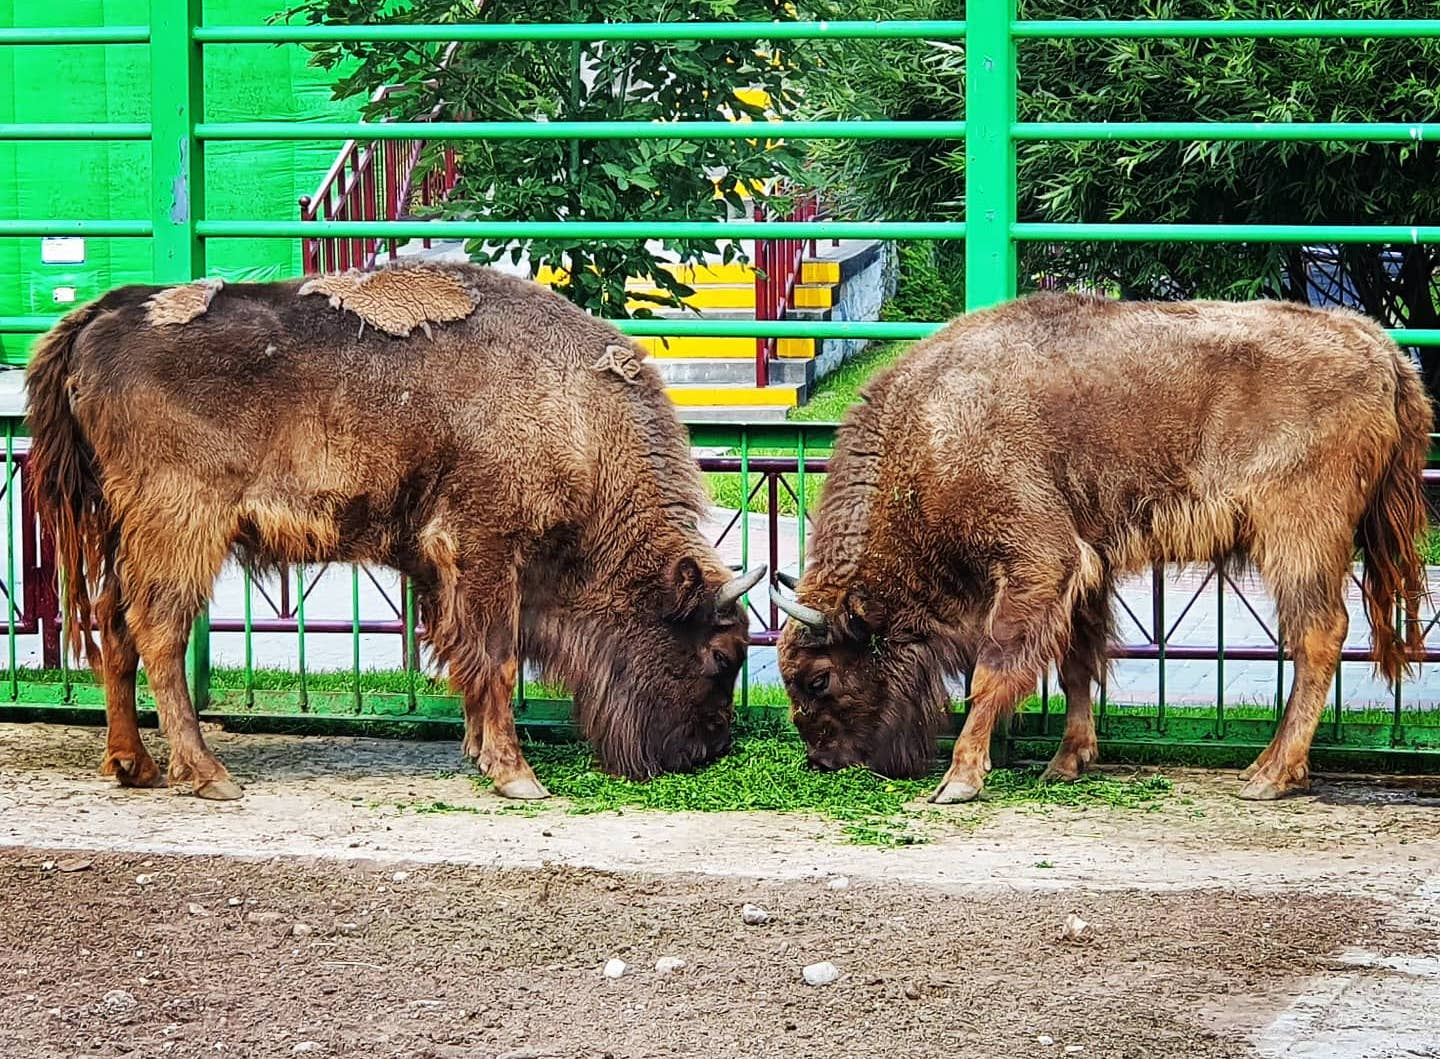 Bison in the Grodno Zoo. Summer 2020 Photo by A.Basak